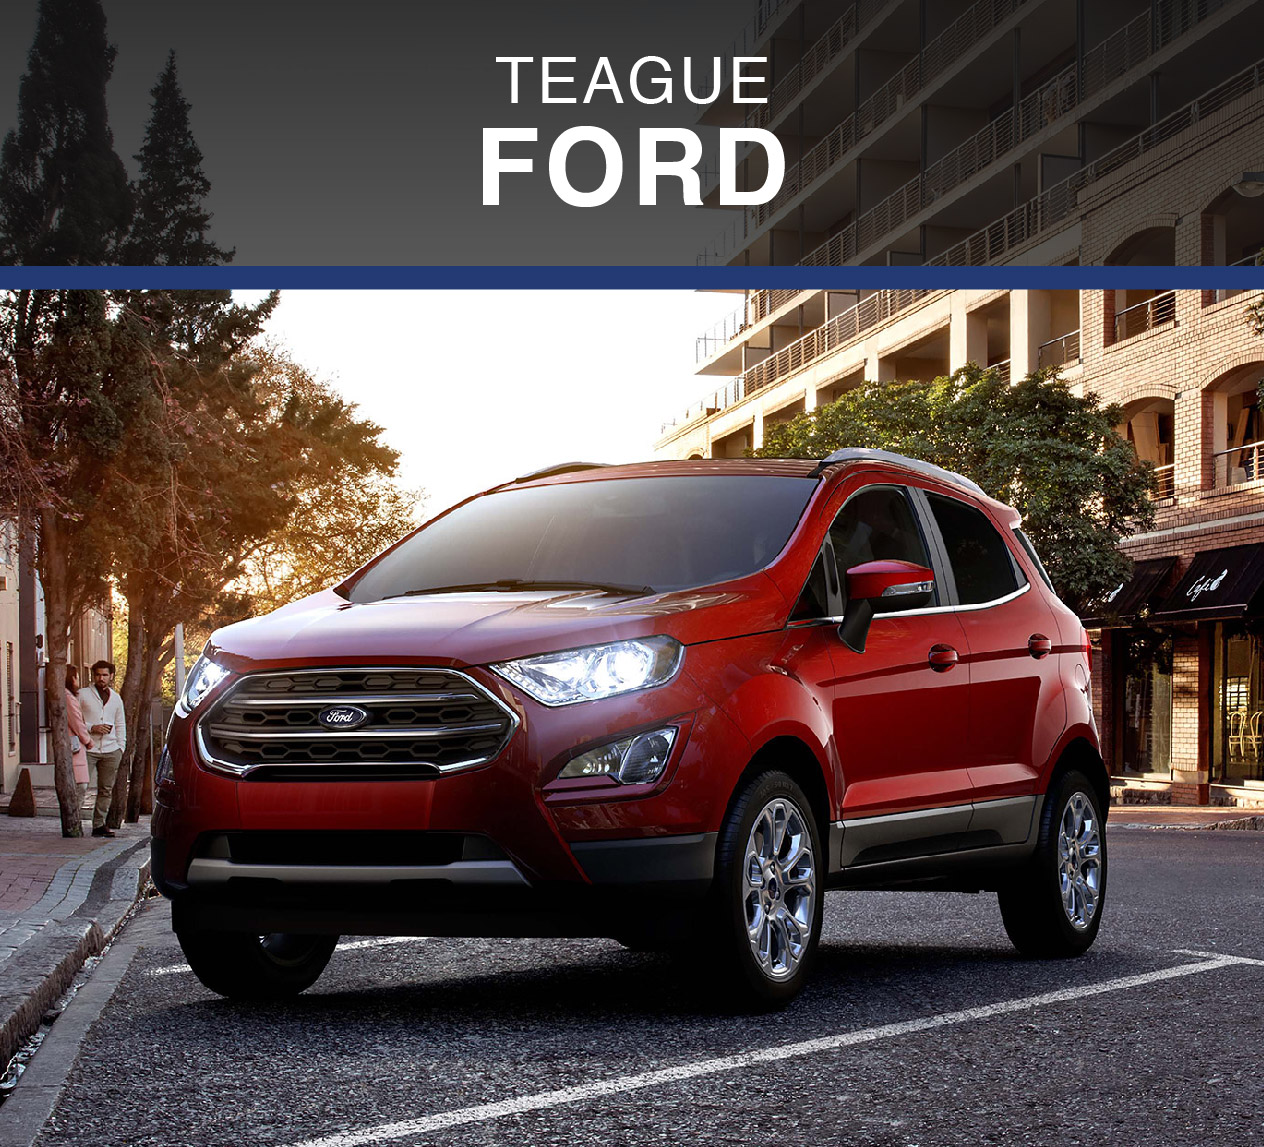 Visit Teague Ford